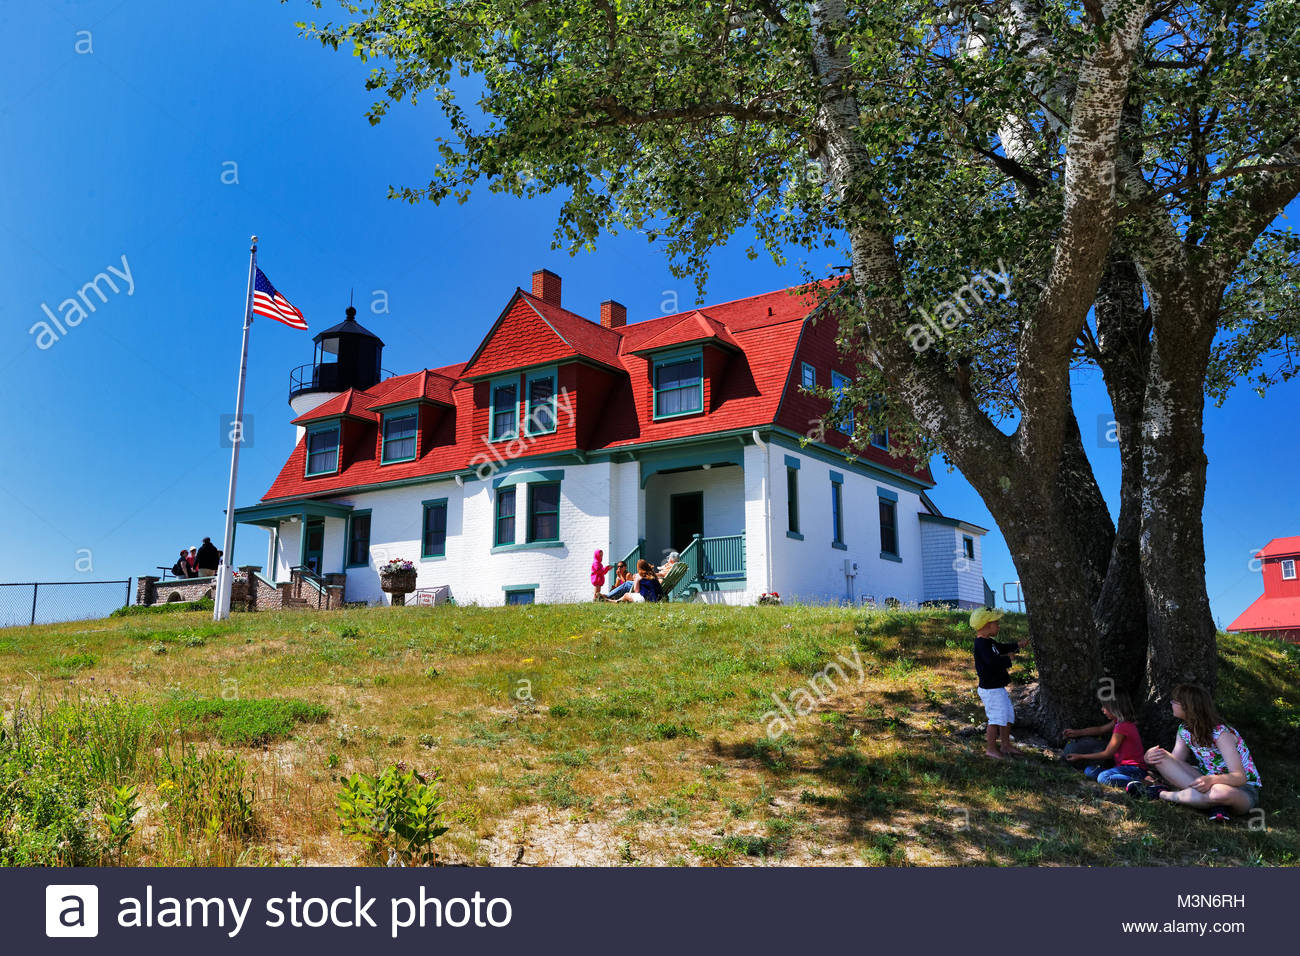 Point Betsie Lighthouse, Norht of Frankfort Michigan on a very sunny day - Stock Image